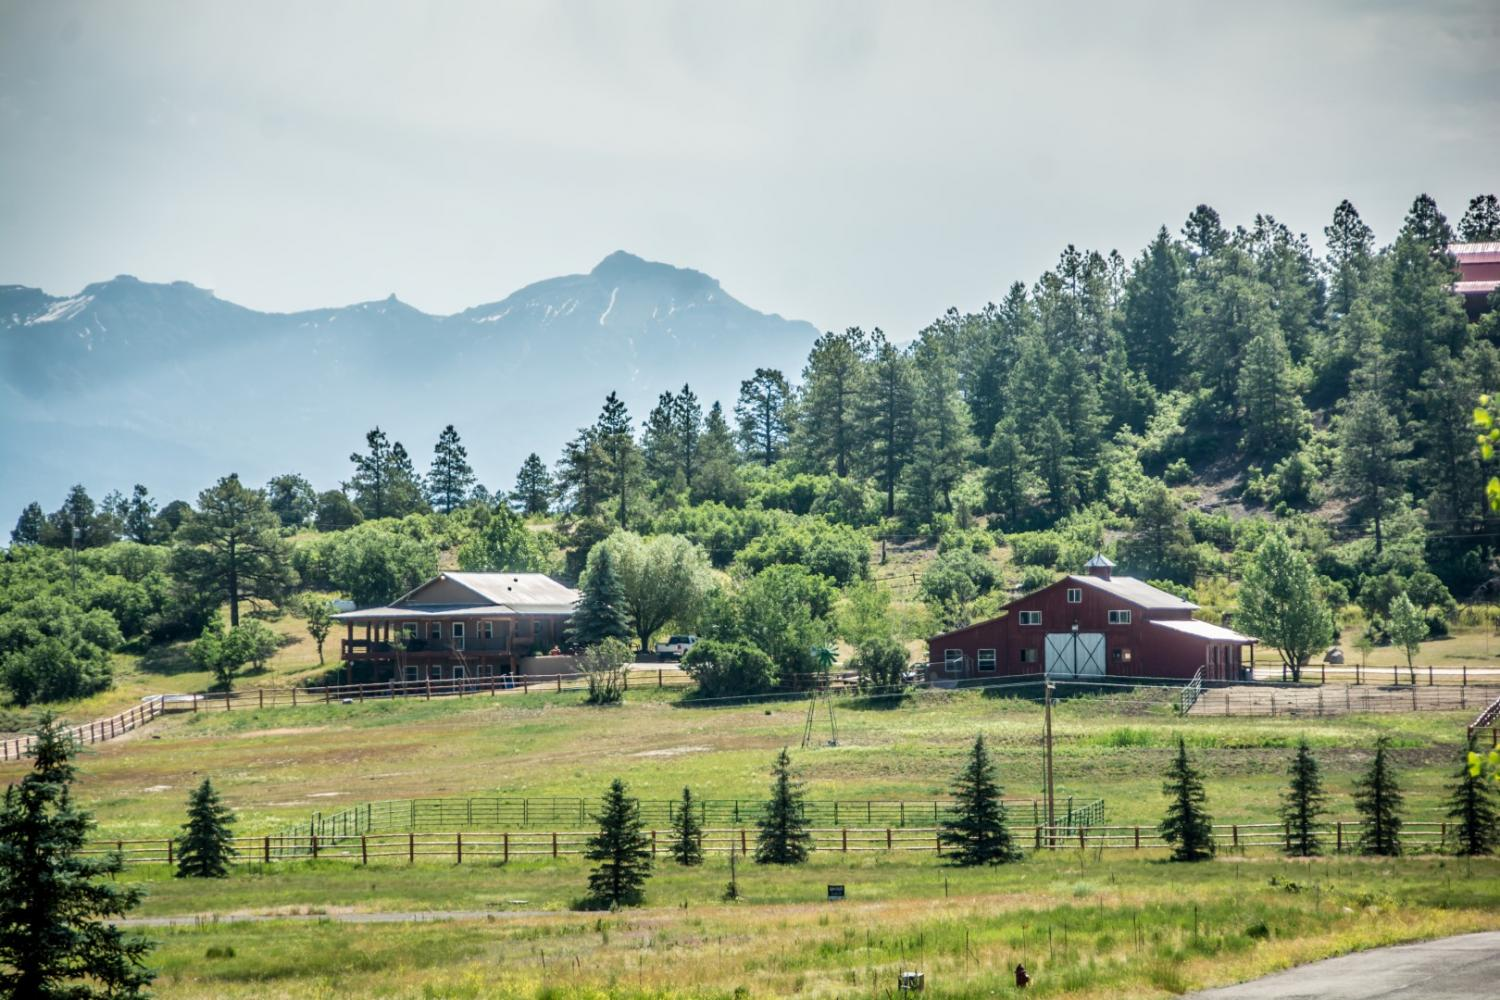 Pagosa Springs Horse Property Gallesproperties Com Pagosa Springs Co Archuleta County Land For Sale Farm Ranch